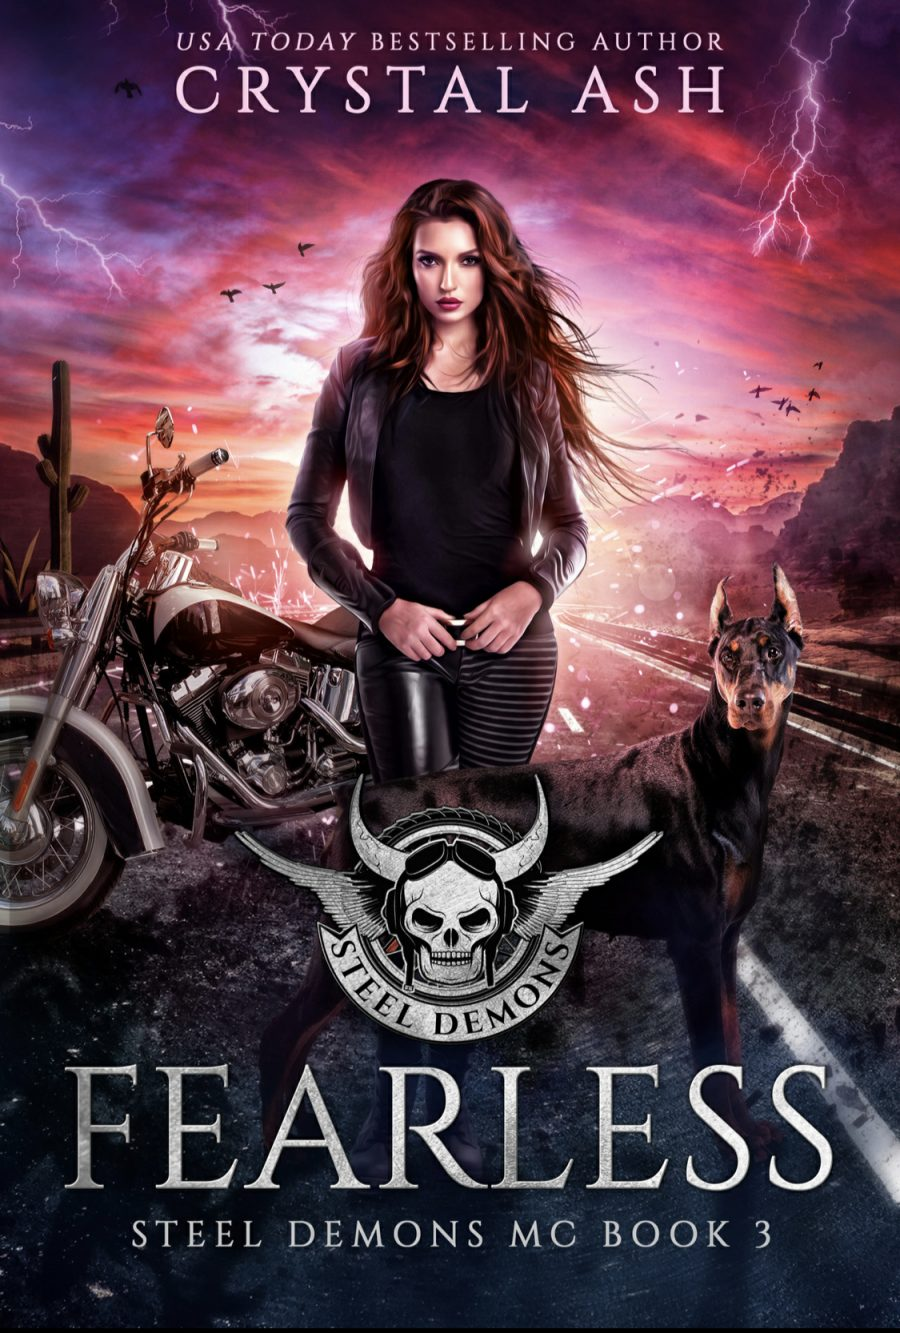 Fearless (Steel Demons MC - Book 3) by Crystal Ash - A Book Review #BookReview #Dystopian #SlowBurn #RH #4Stars #KindleUnlimited #KU